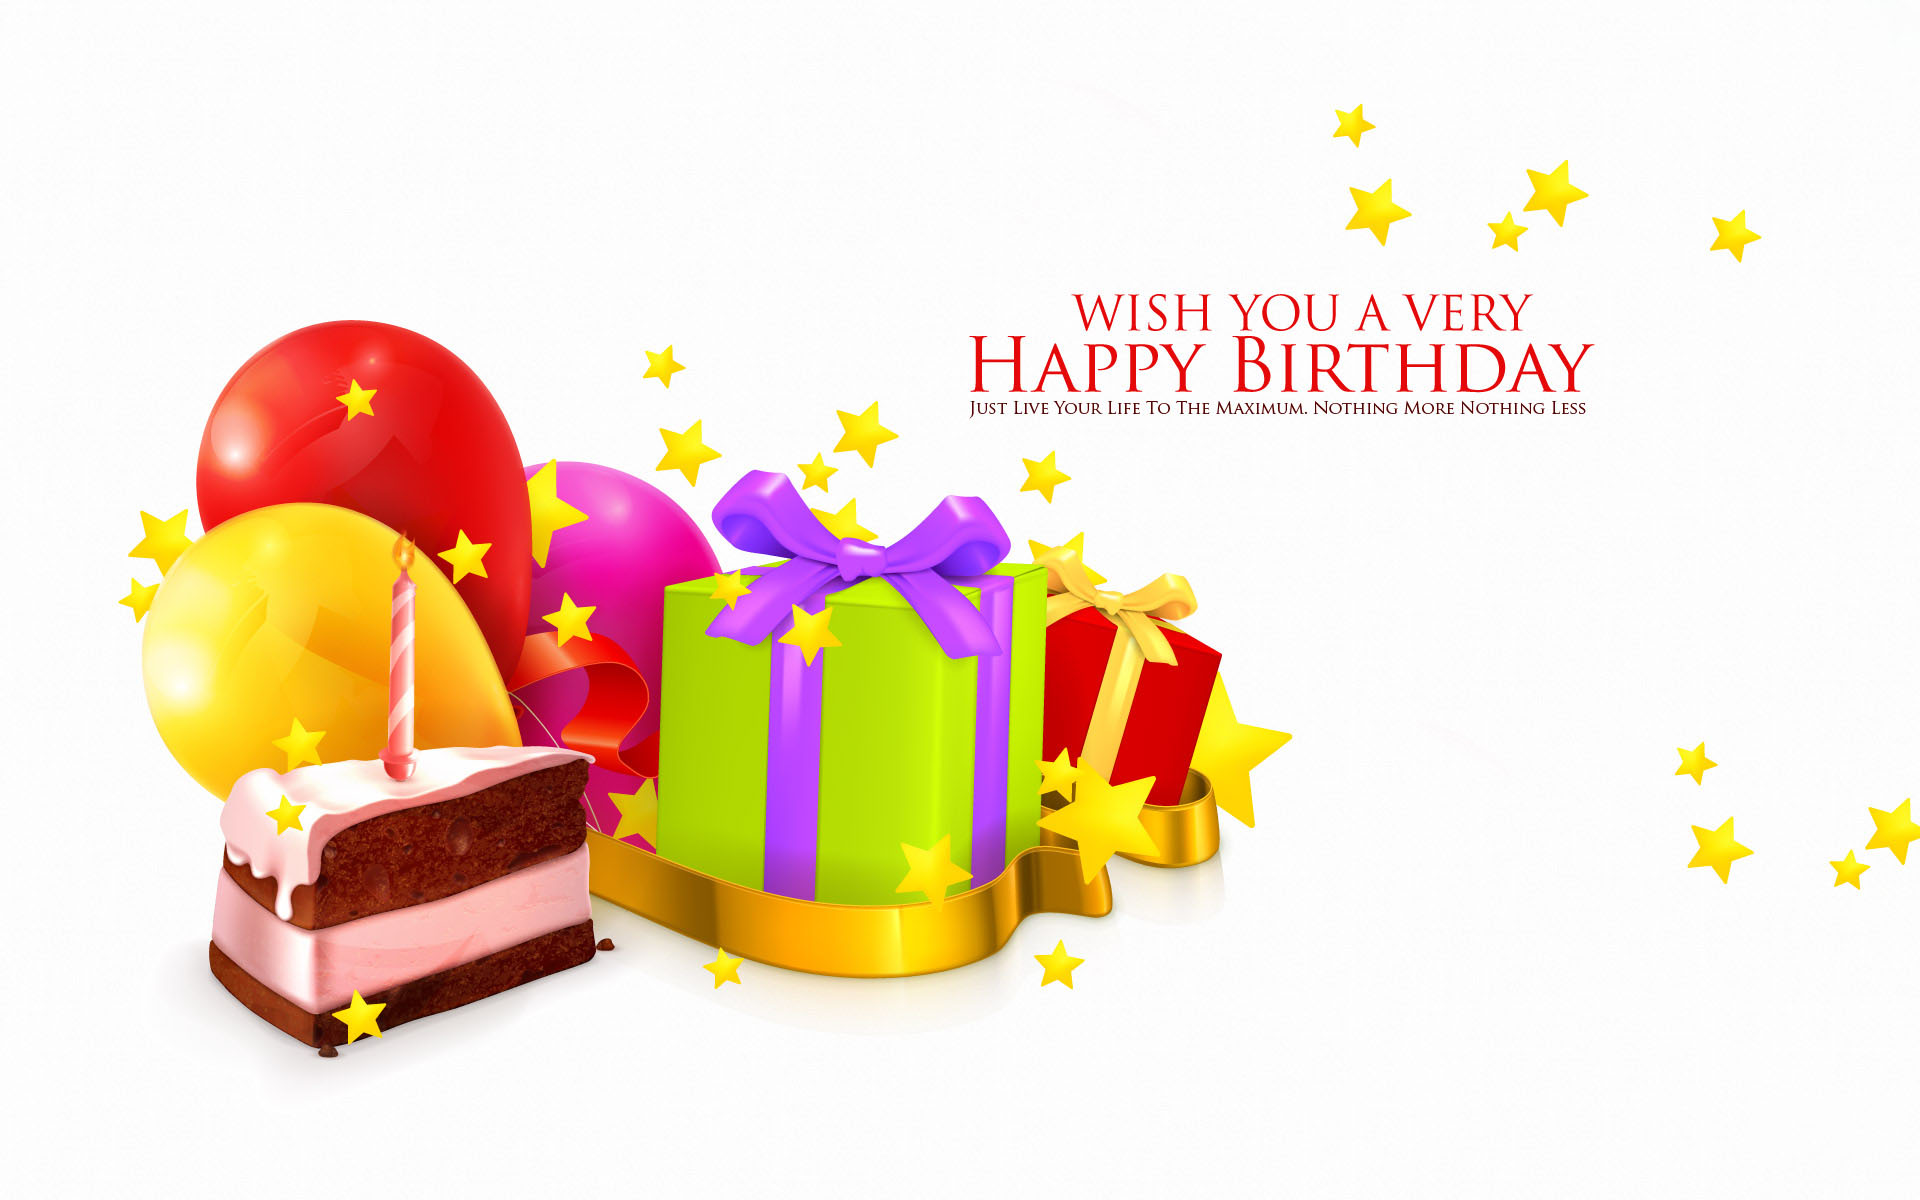 birthday background wallpaper hd ; happy-birthday-backgrounds-wallpapers-5